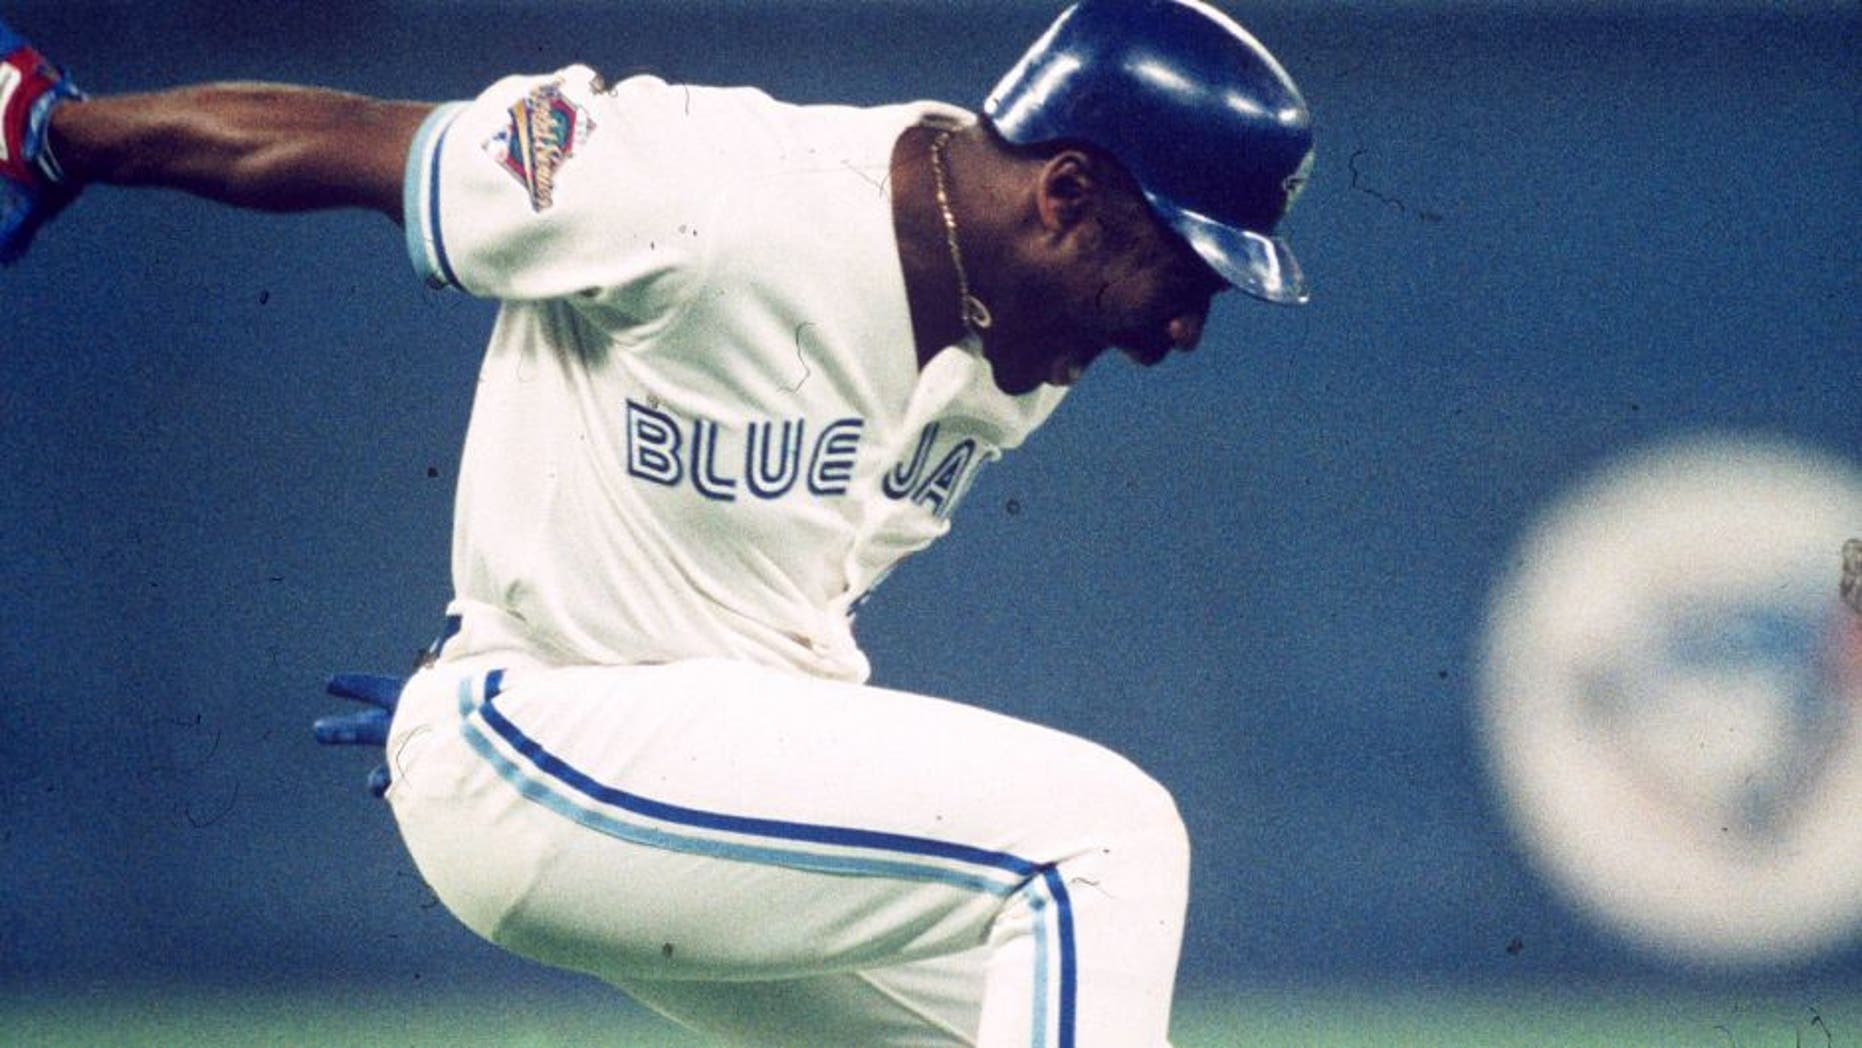 TORONTO, ON - OCTOBER 23: Joe Carter #29 of the Toronto Blue Jays celebrates after hitting a walk off home run in the ninth inning during Game Six of the 1993 World Series at the Toronto SkyDome on October 23, 1993 in Toronto, Ontario, Canada. (Photo by MLB Photos)